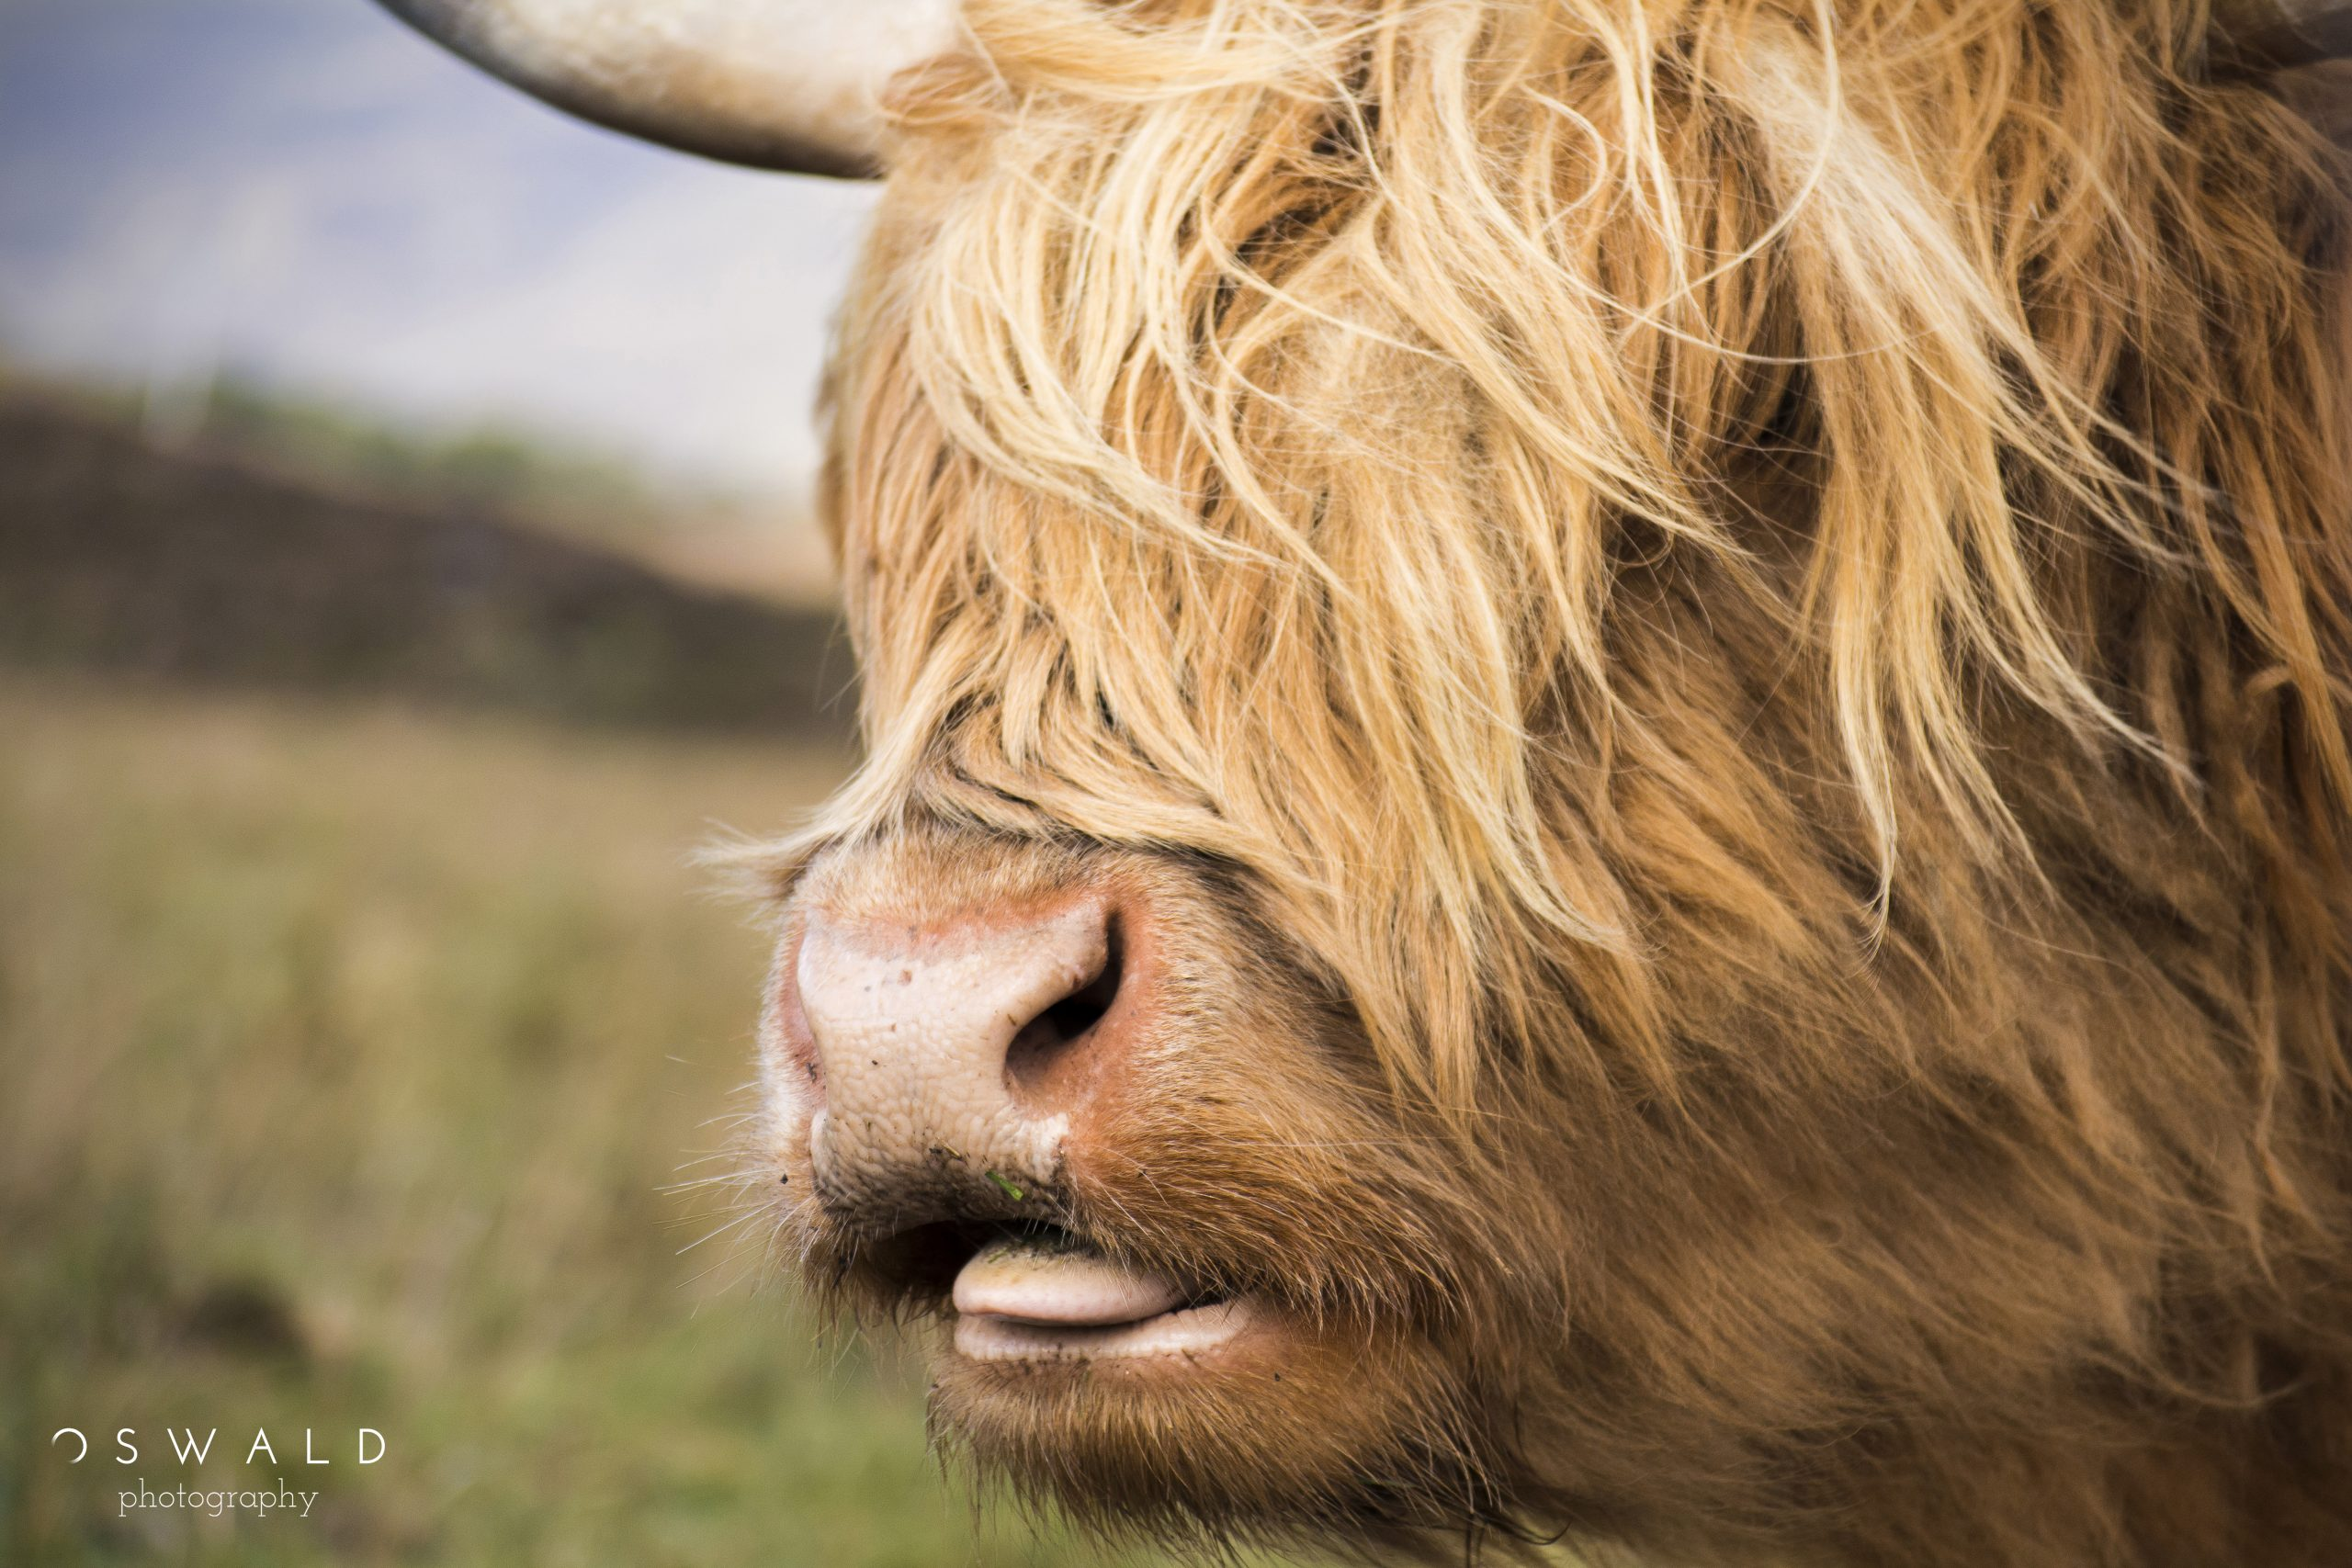 A Highland cow, or hairy cow, on the Isle of Skye in Scotland enjoying his grassy meal.